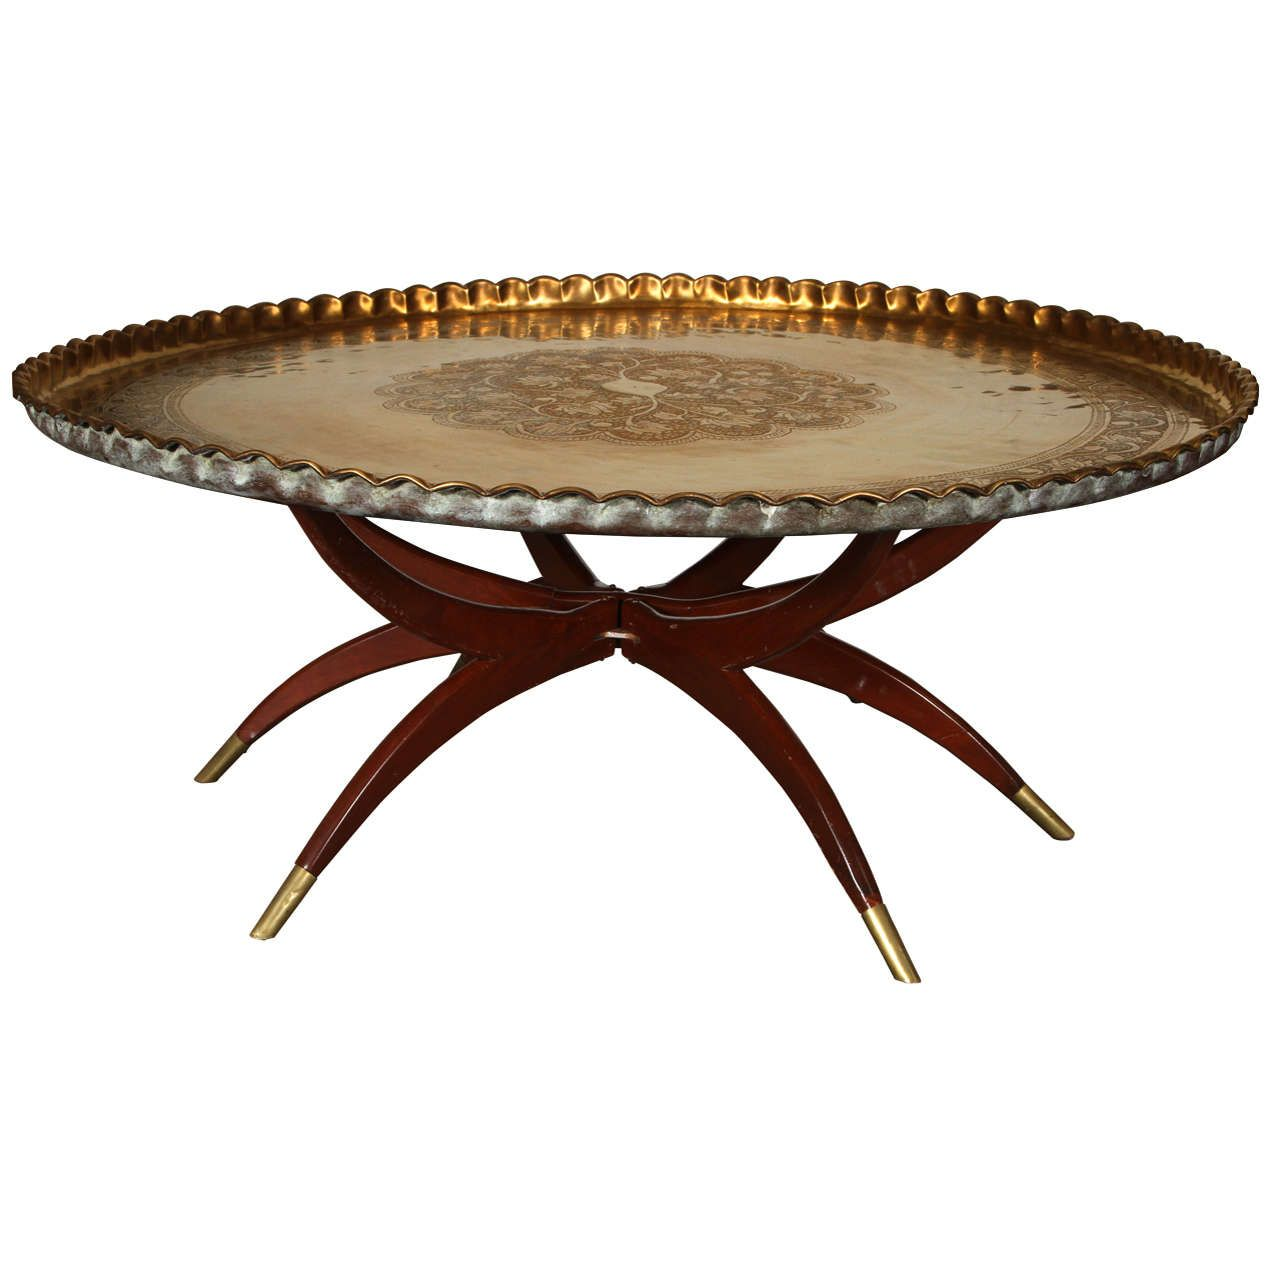 Large Moroccan Round Brass Tray Table On Folding Stand 45 In